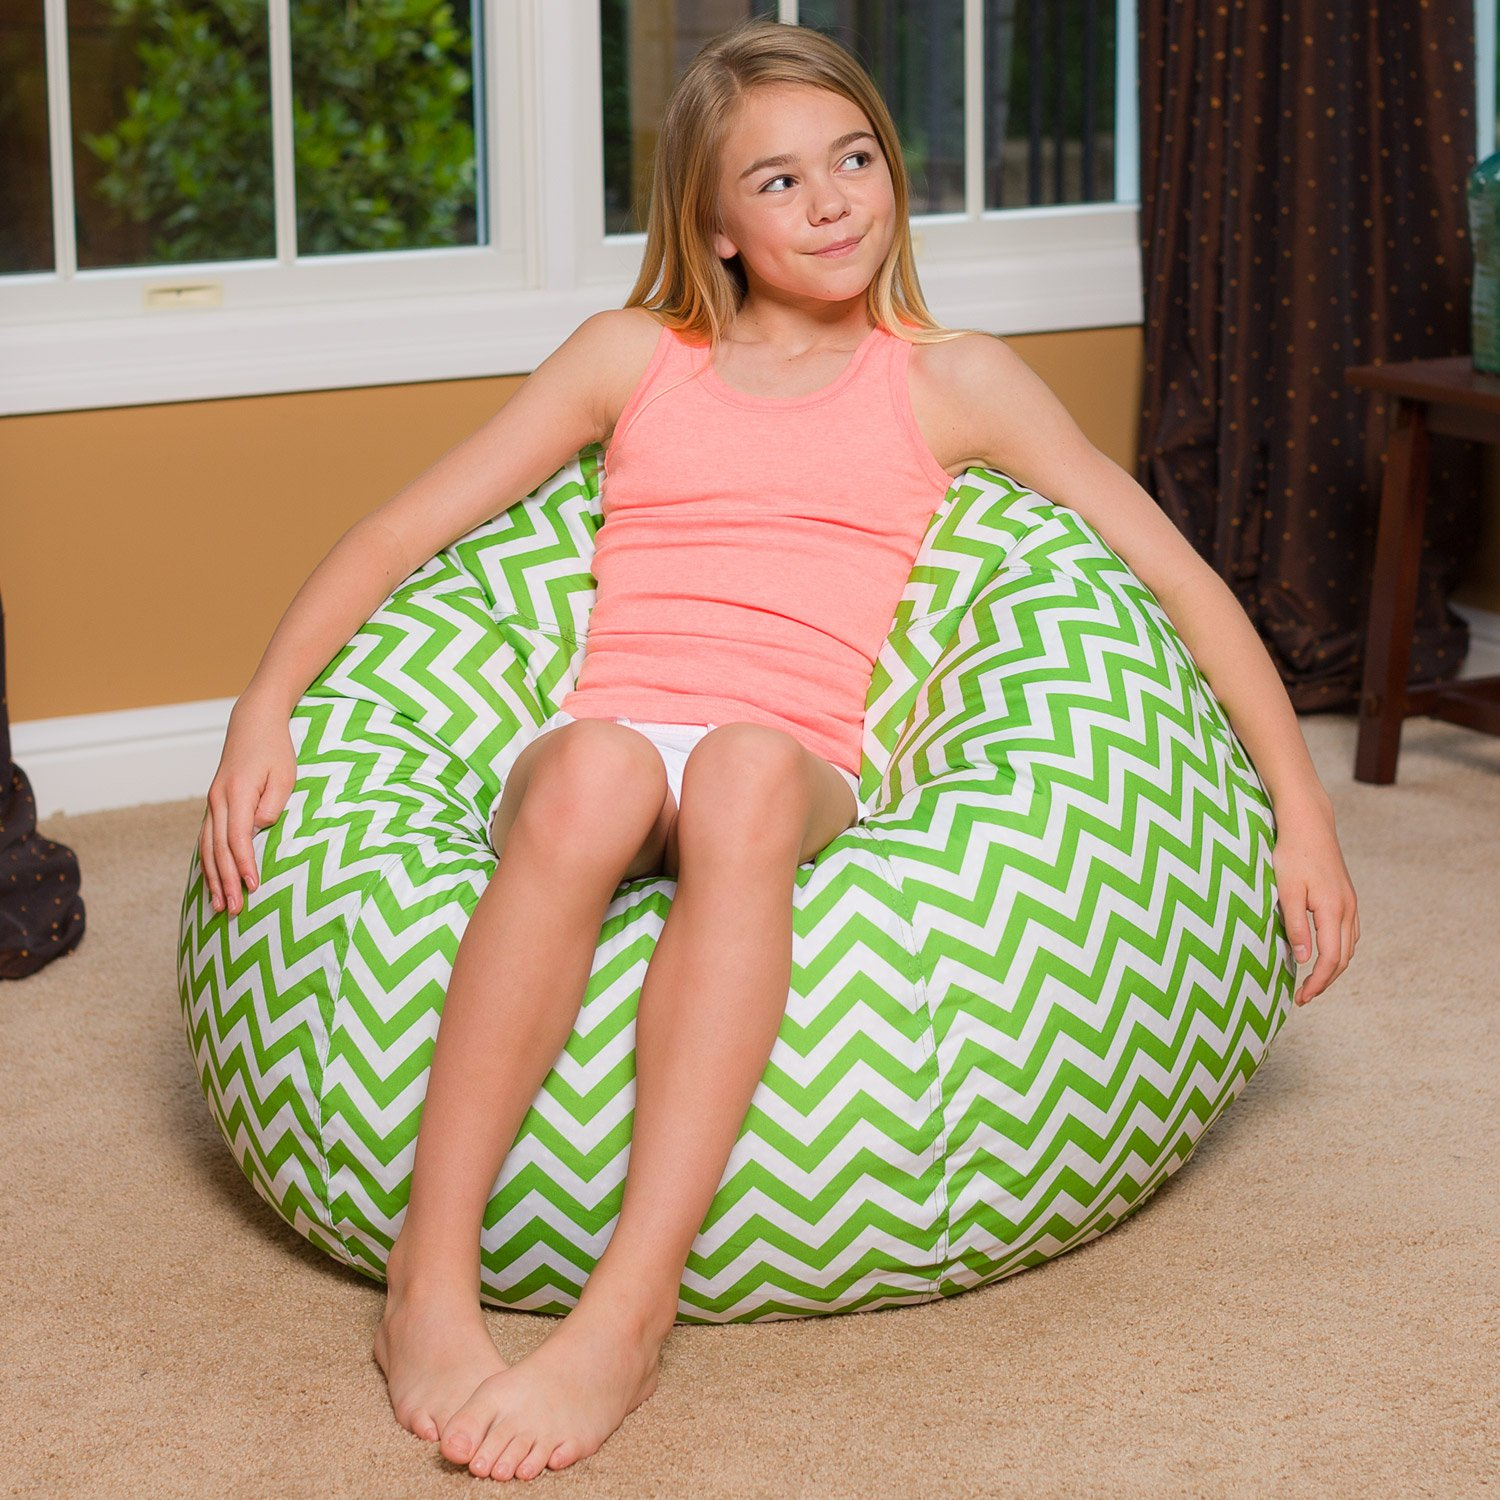 Big Comfy Bean Bag Chair: Posh Large Beanbag Chairs for Kids, Teens and Adults - Polyester Cloth Puff Sack Lounger Furniture for All Ages - 27 Inch - Chevron Green and White by Posh Beanbags (Image #5)